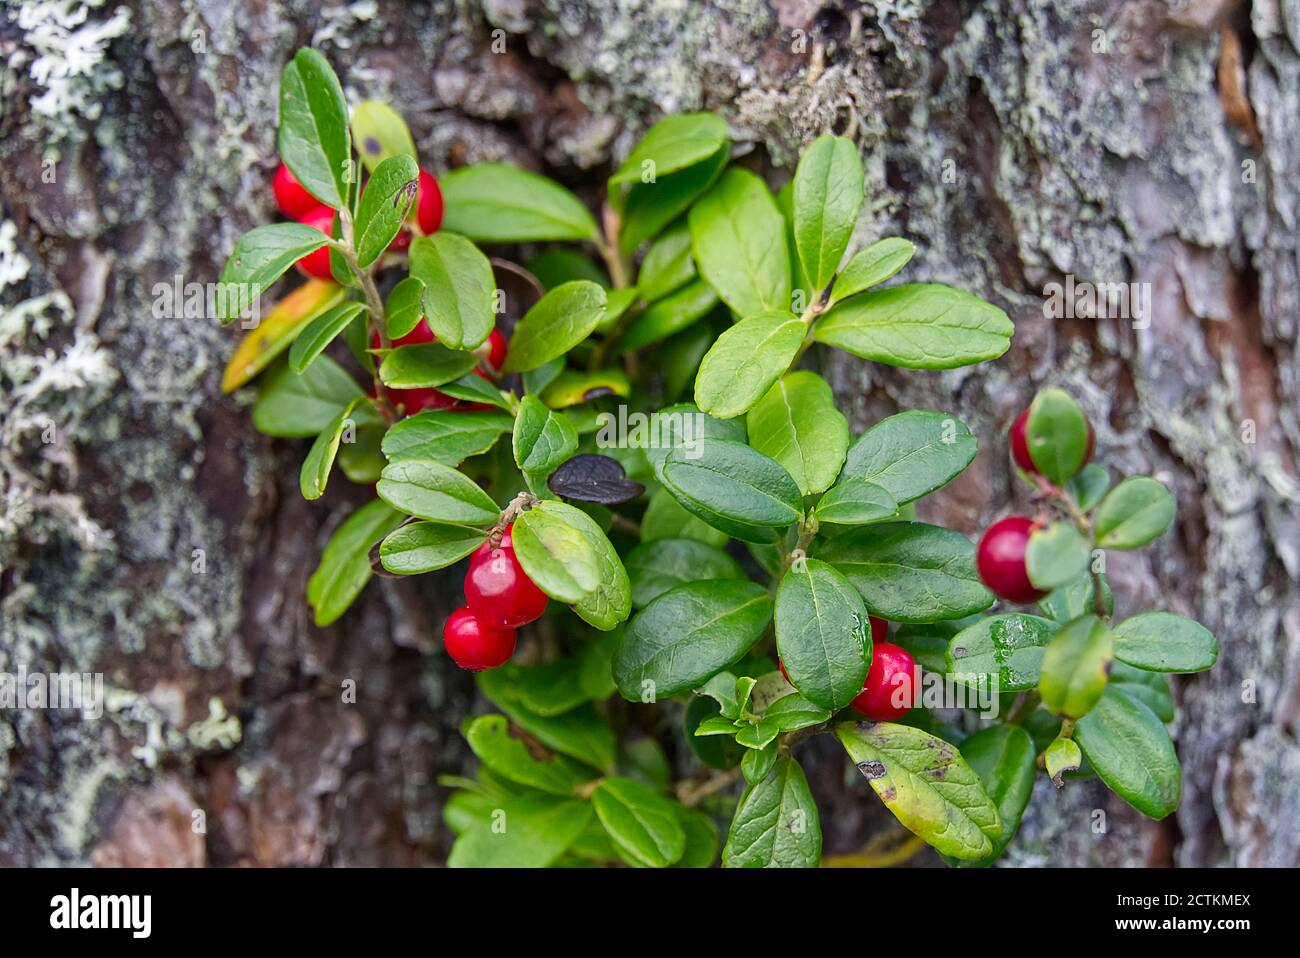 Cowberry Illustration High Resolution Stock Photography and Images ...